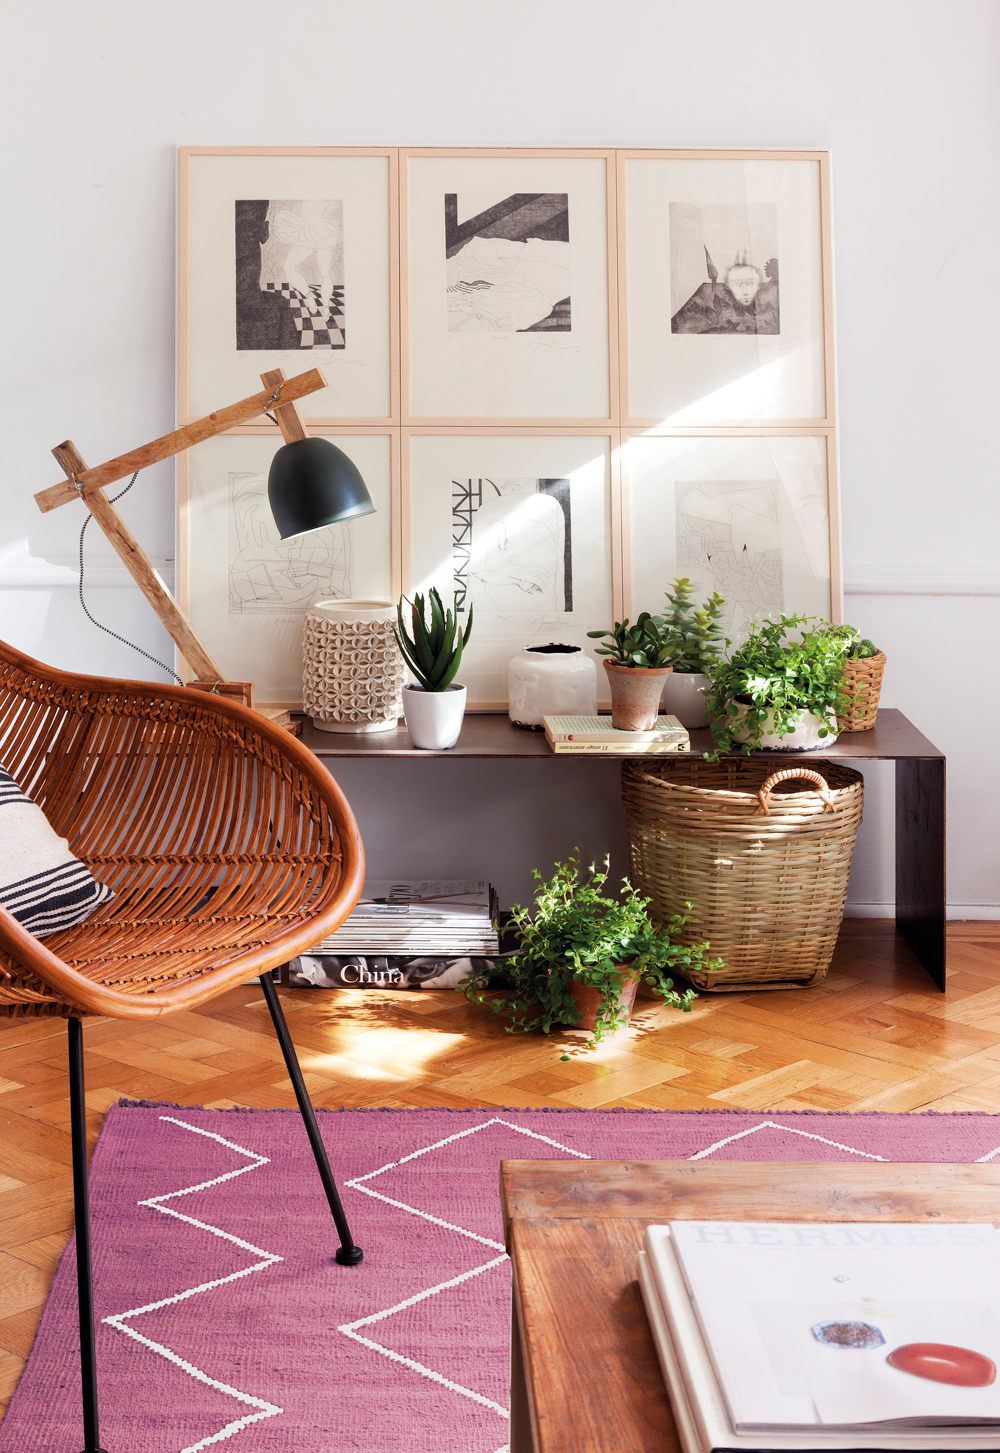 20 ideas para ganar calidez - Decoracion mimbre ...